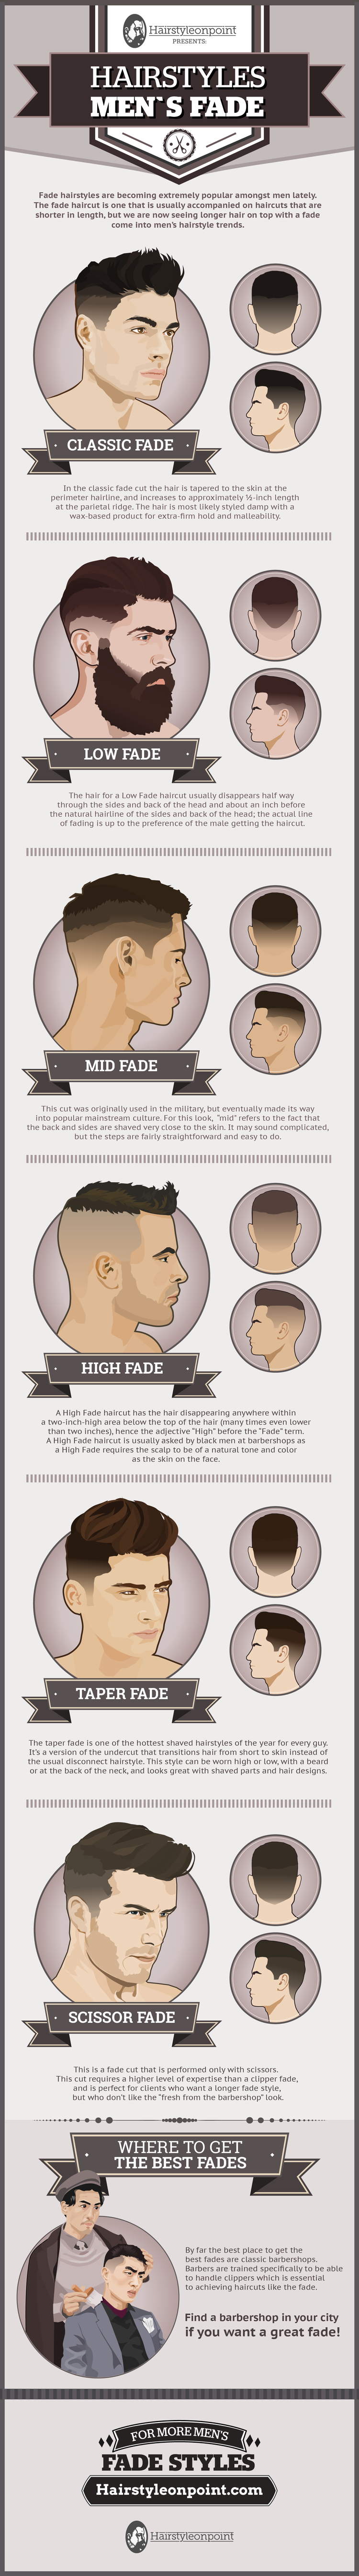 Mens fade haircuts coolest fade hairstyles u haircuts for men  eh  pinterest